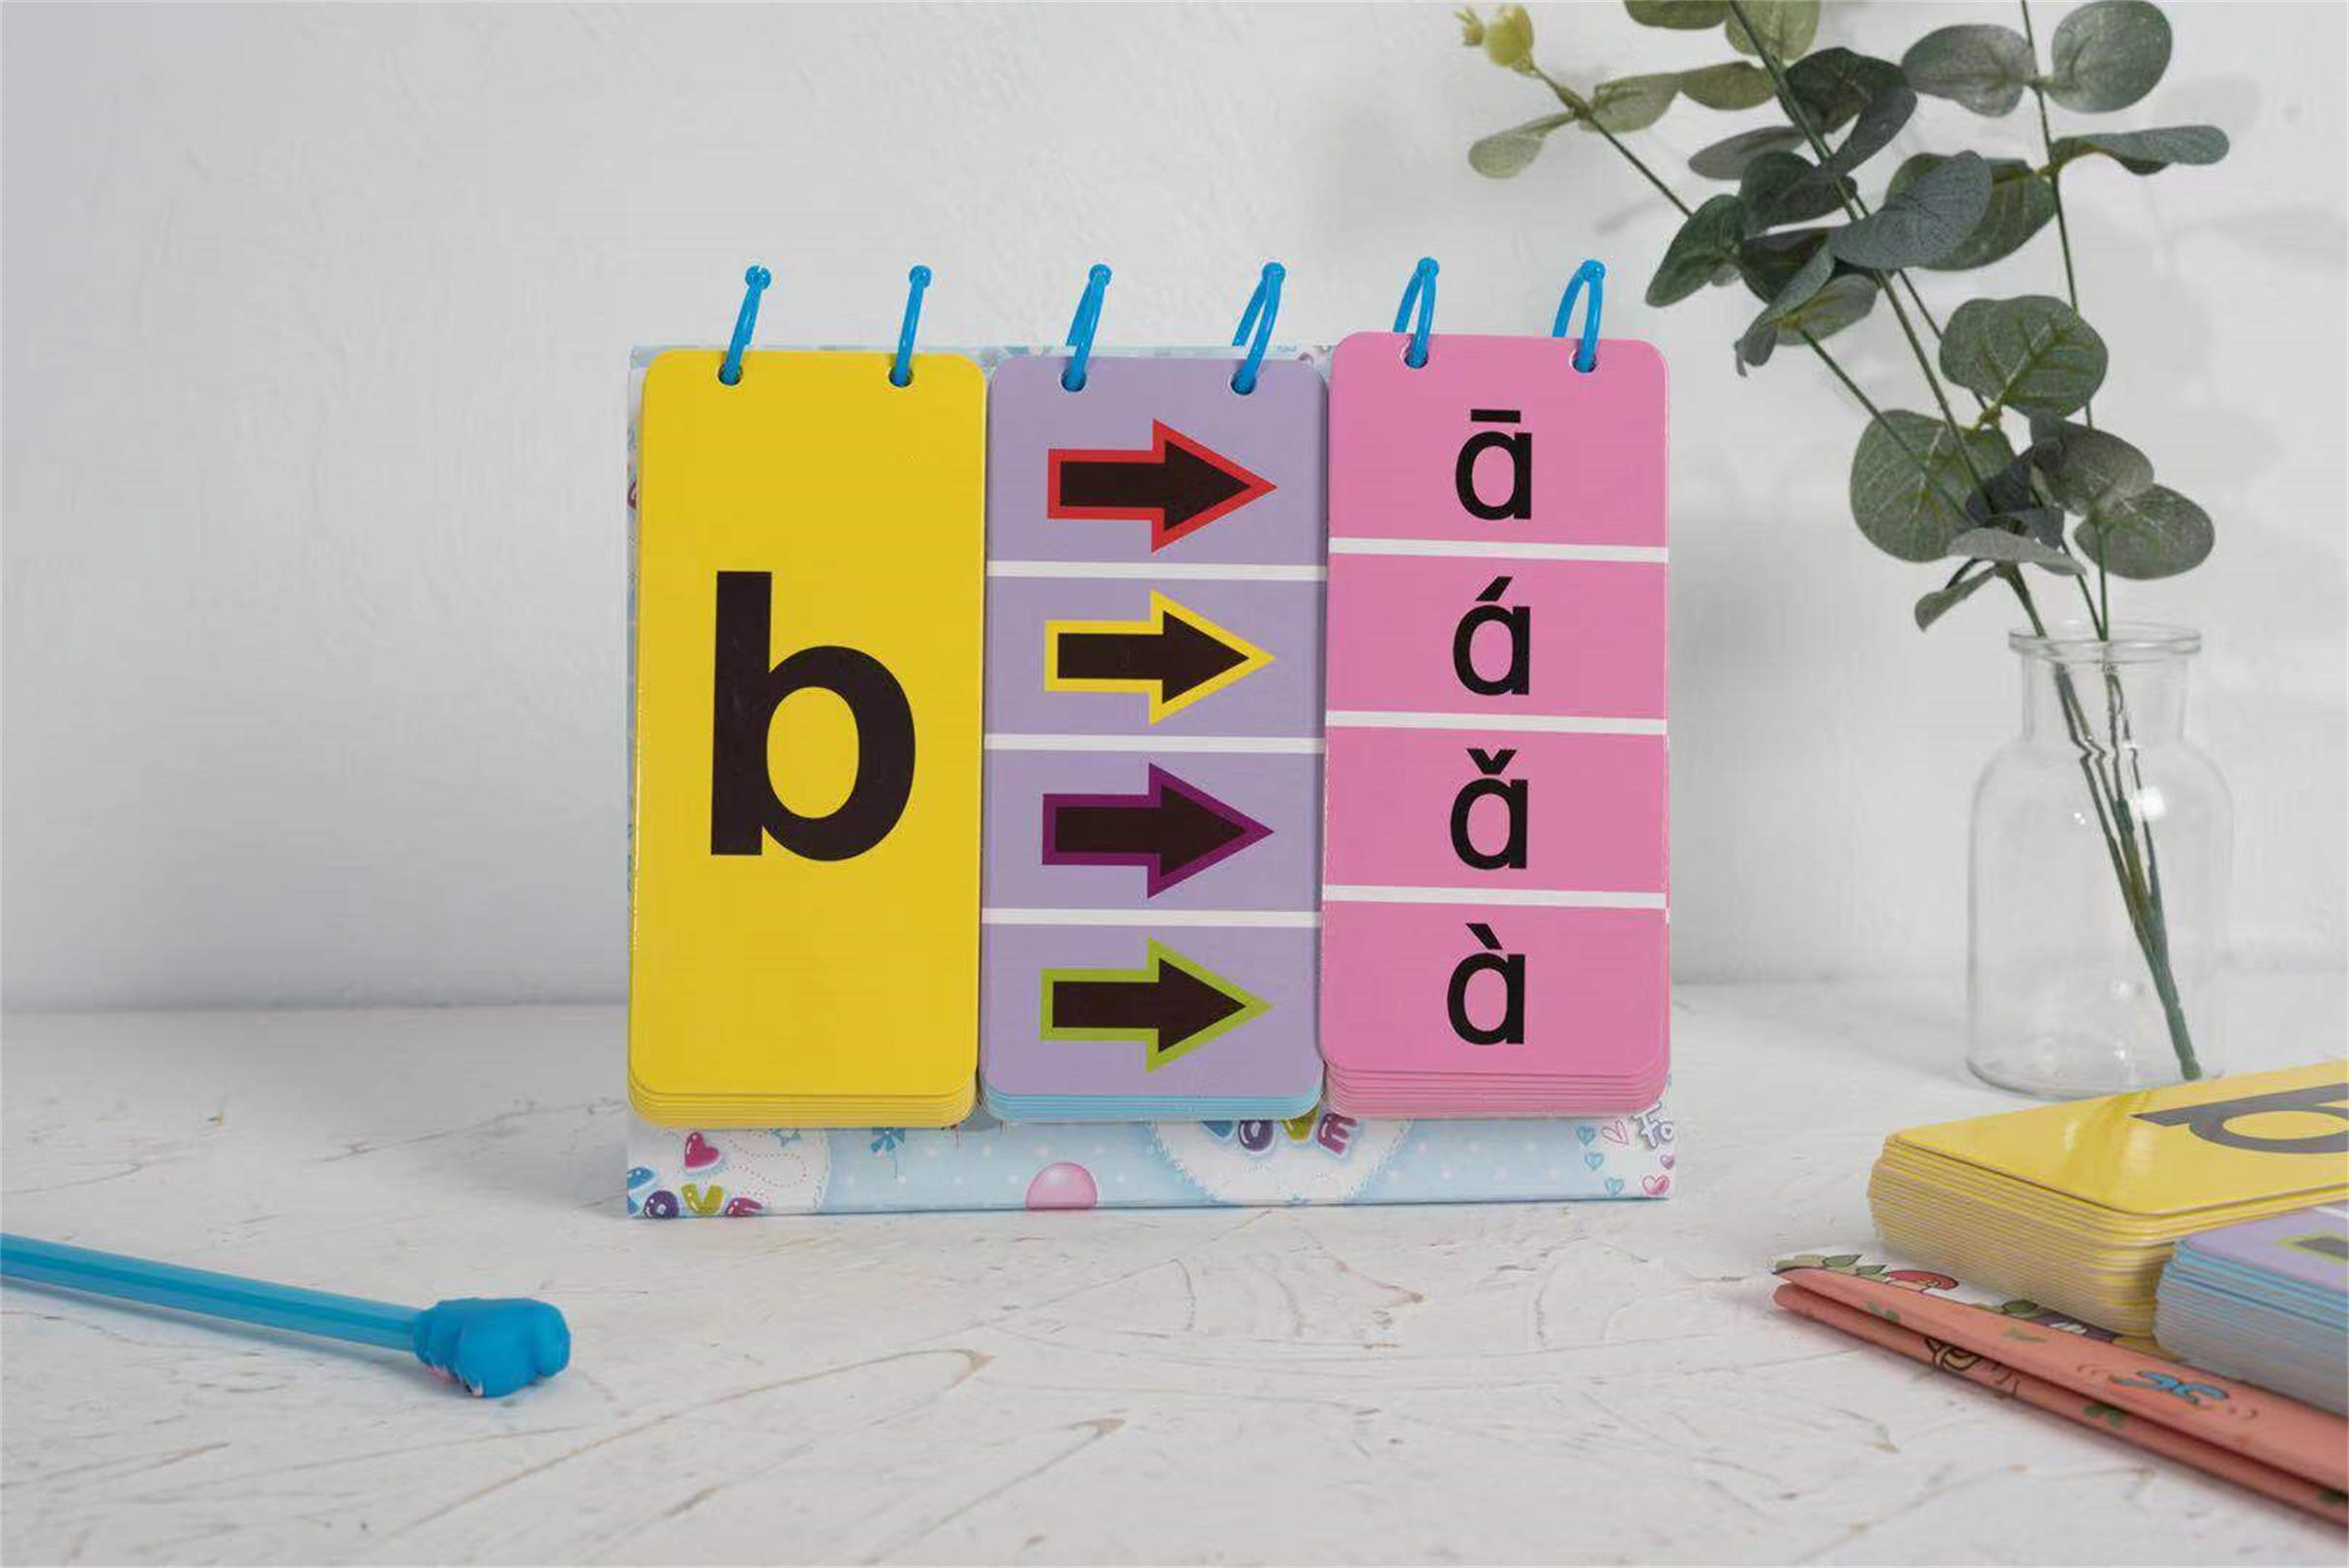 New Chinese phonetic alphabet for children aged 5-6-7 in Guangdong Province